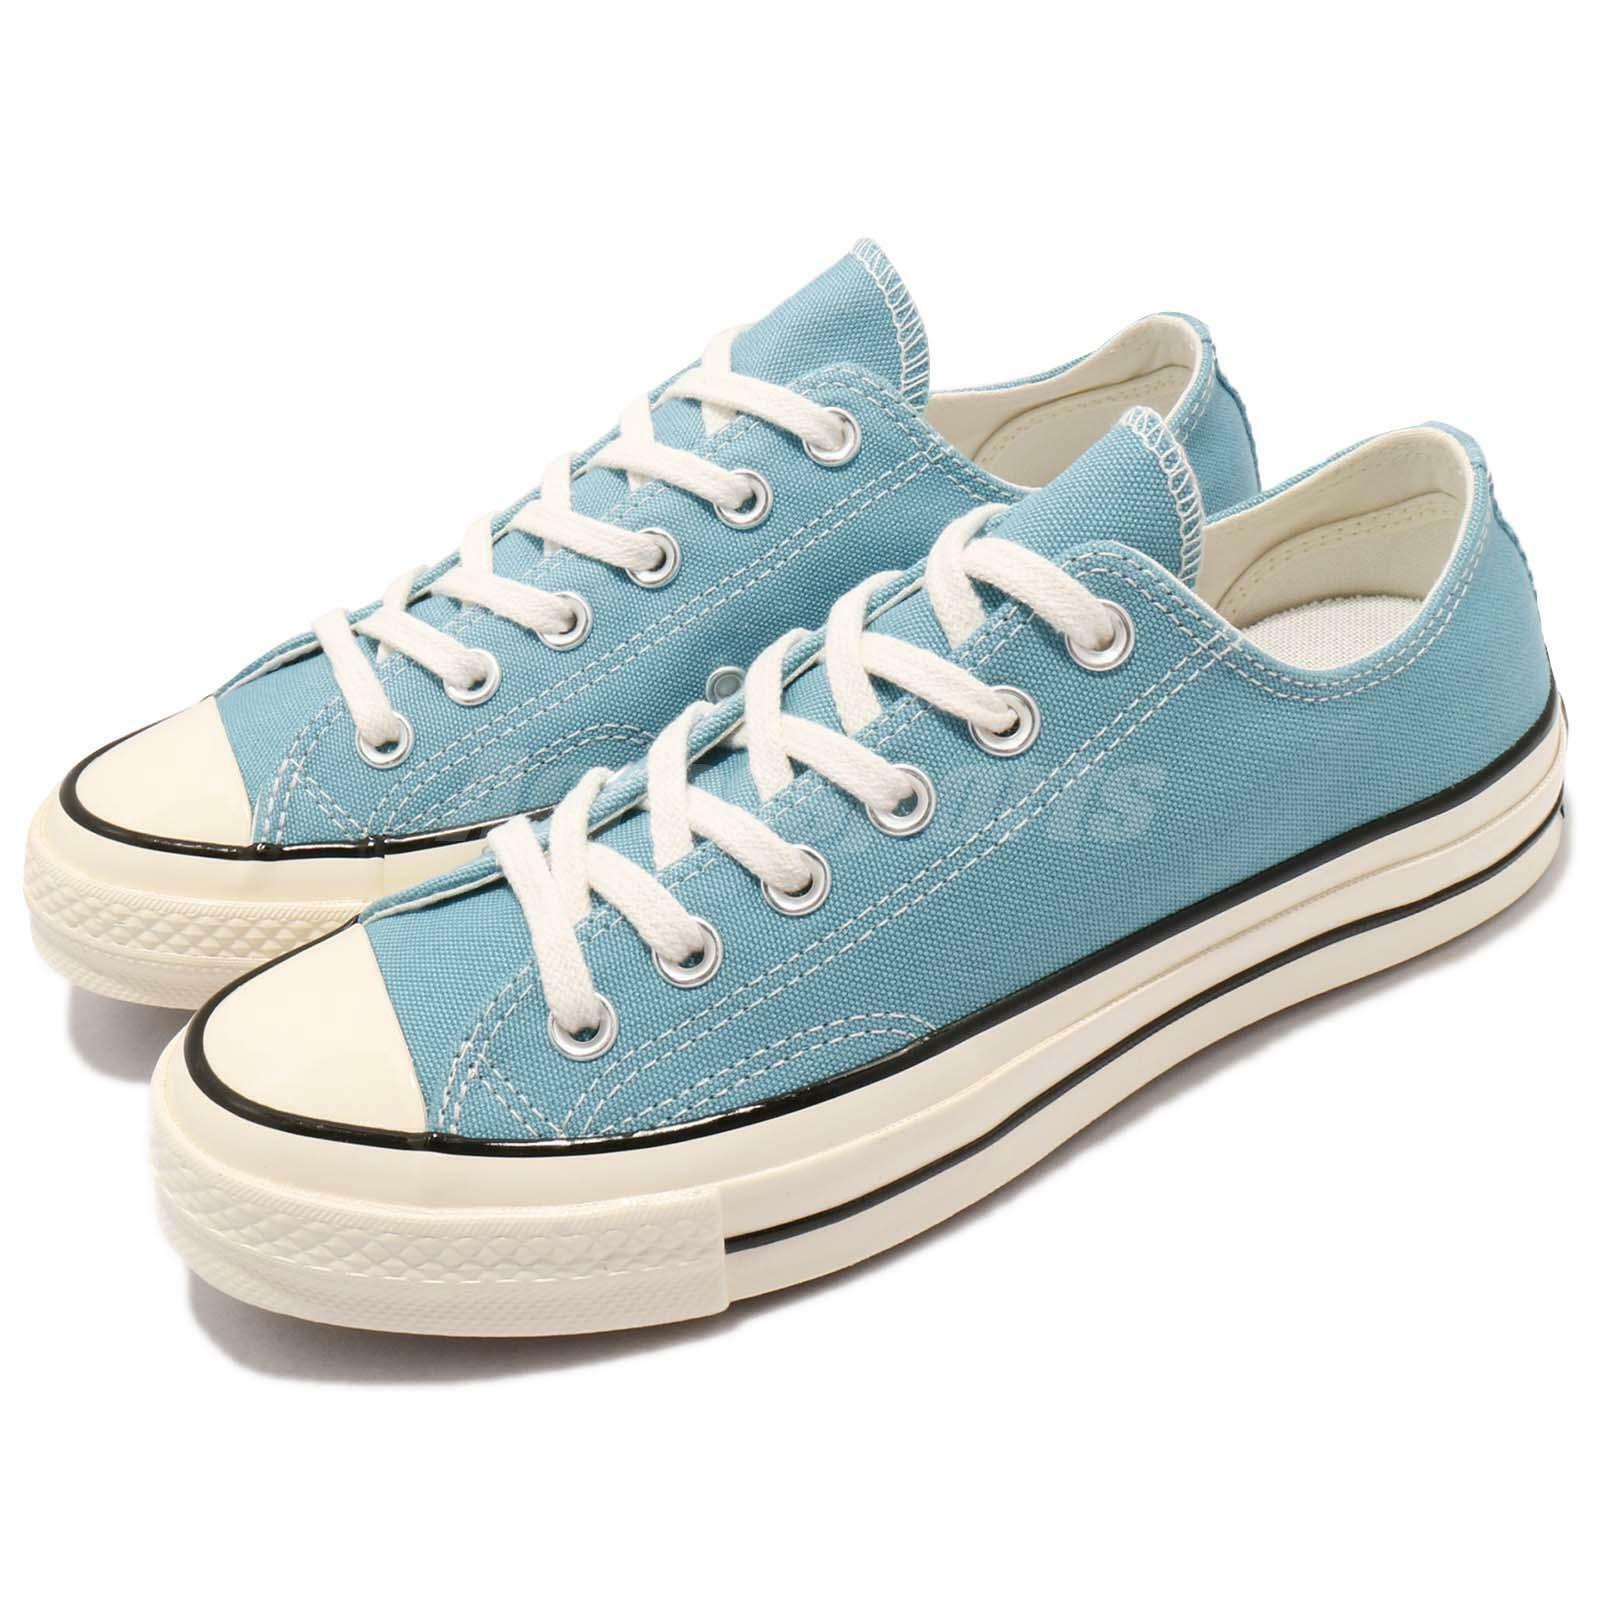 Converse First String Chuck Taylor All Star 70 1970s OX Blue Uomo Donna 161444C